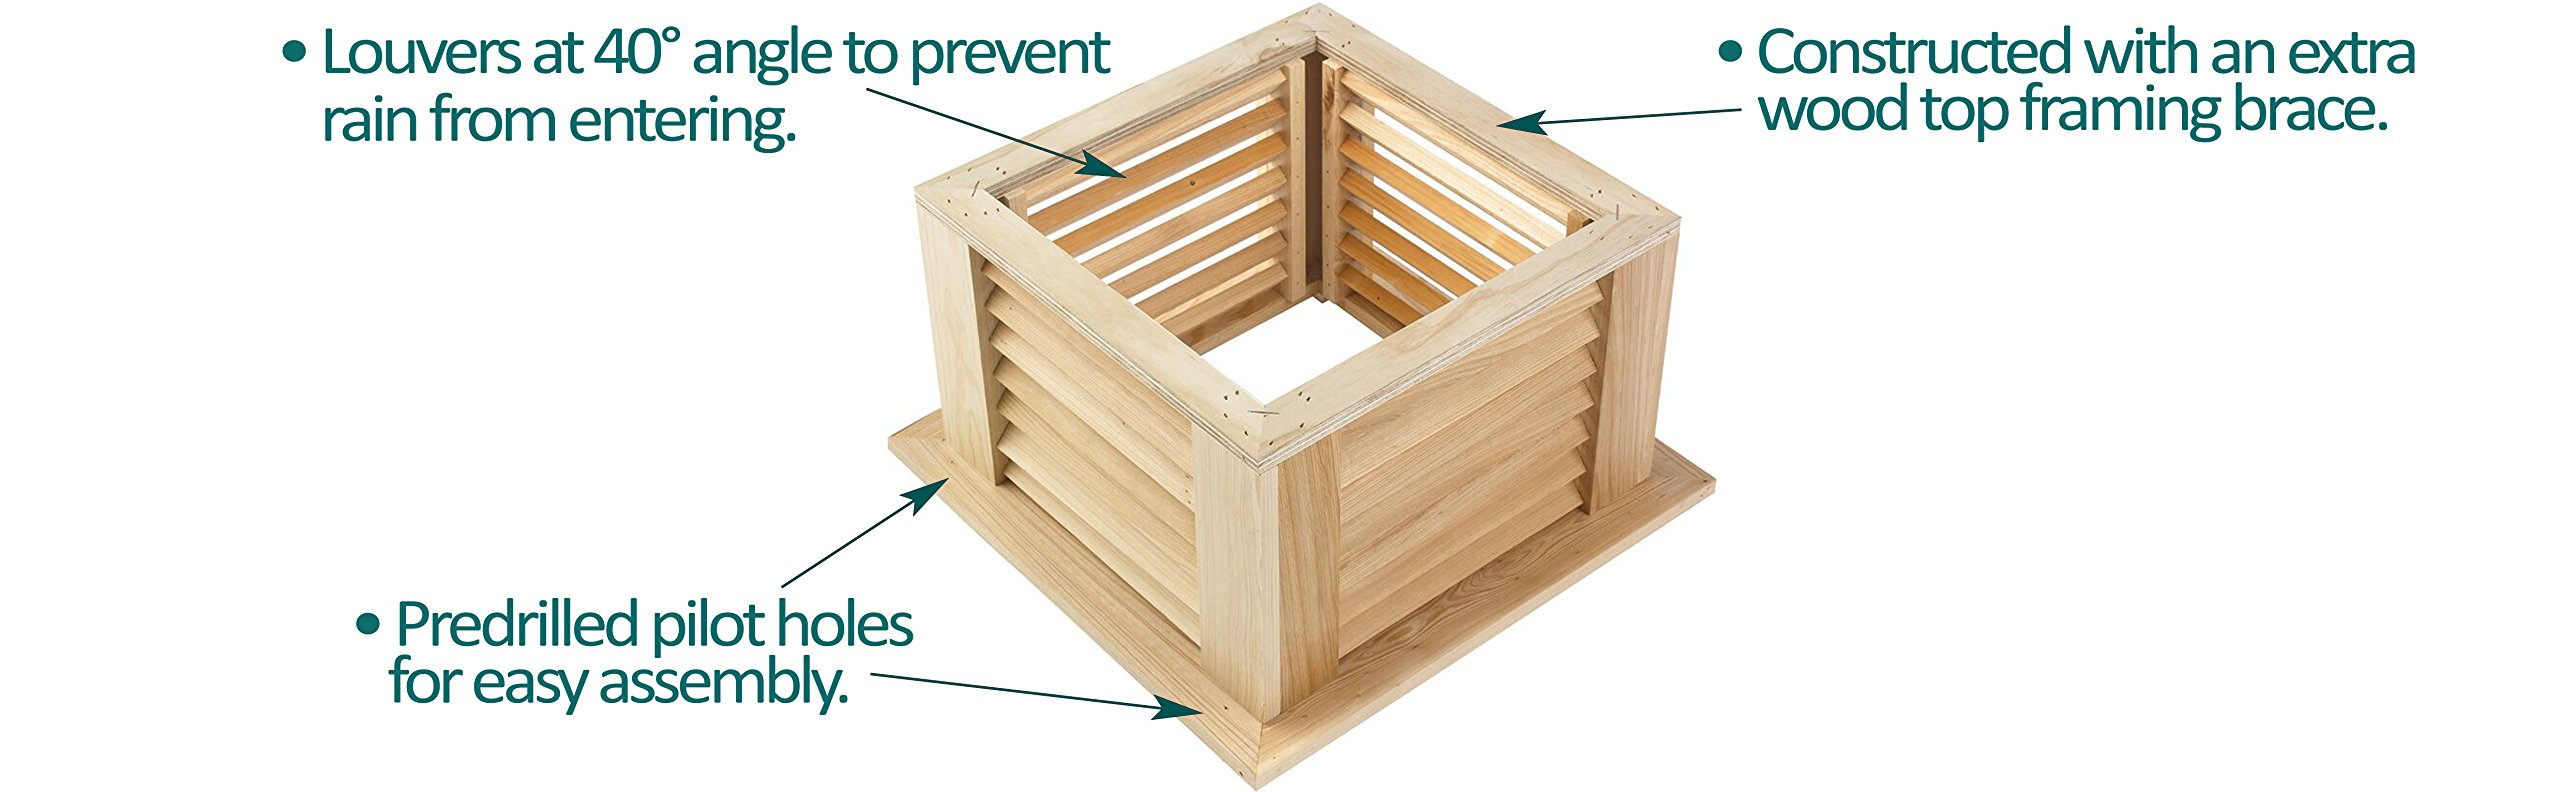 Good Directions Manchester Louvered Cupola with Pure Copper Roof, Cypress Wood, 26'' x 32'', Quick Ship, Reinforced Rafters and Louvers, Cupolas by Good Directions (Image #4)